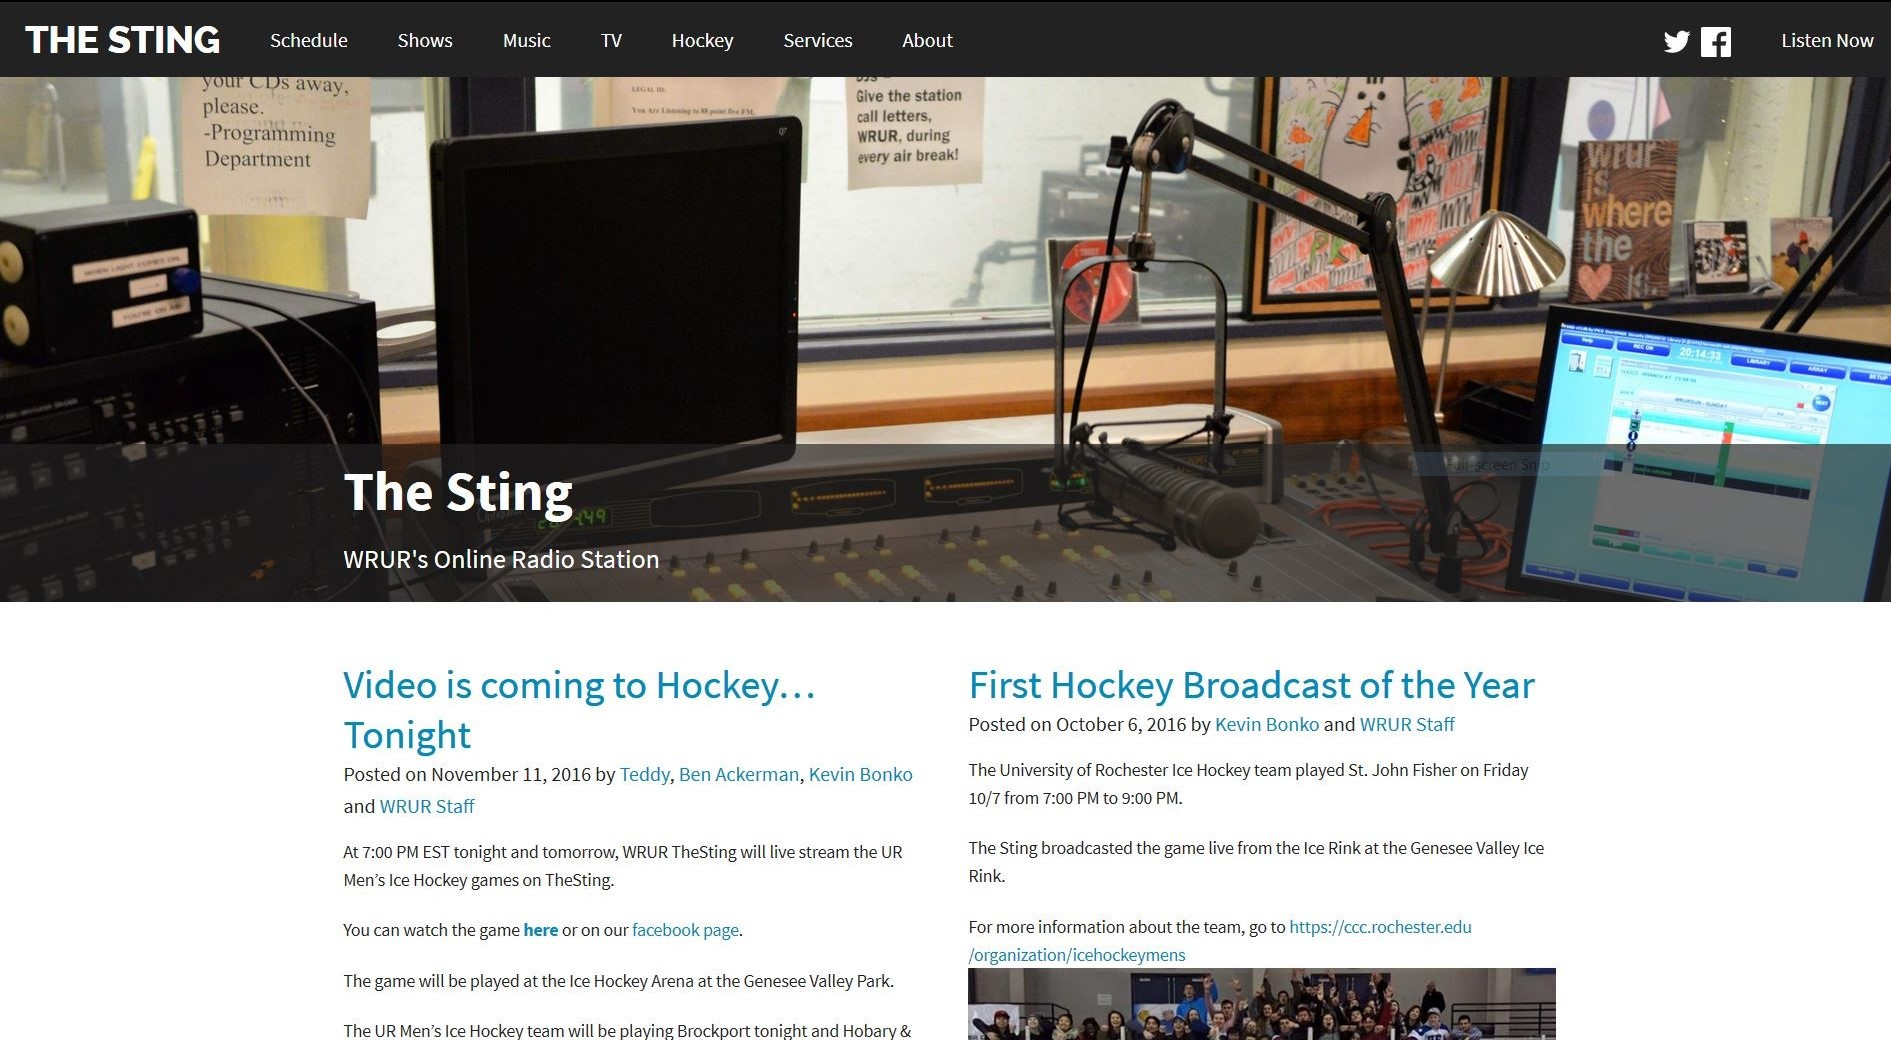 The Sting – WRUR's Online Radio Station